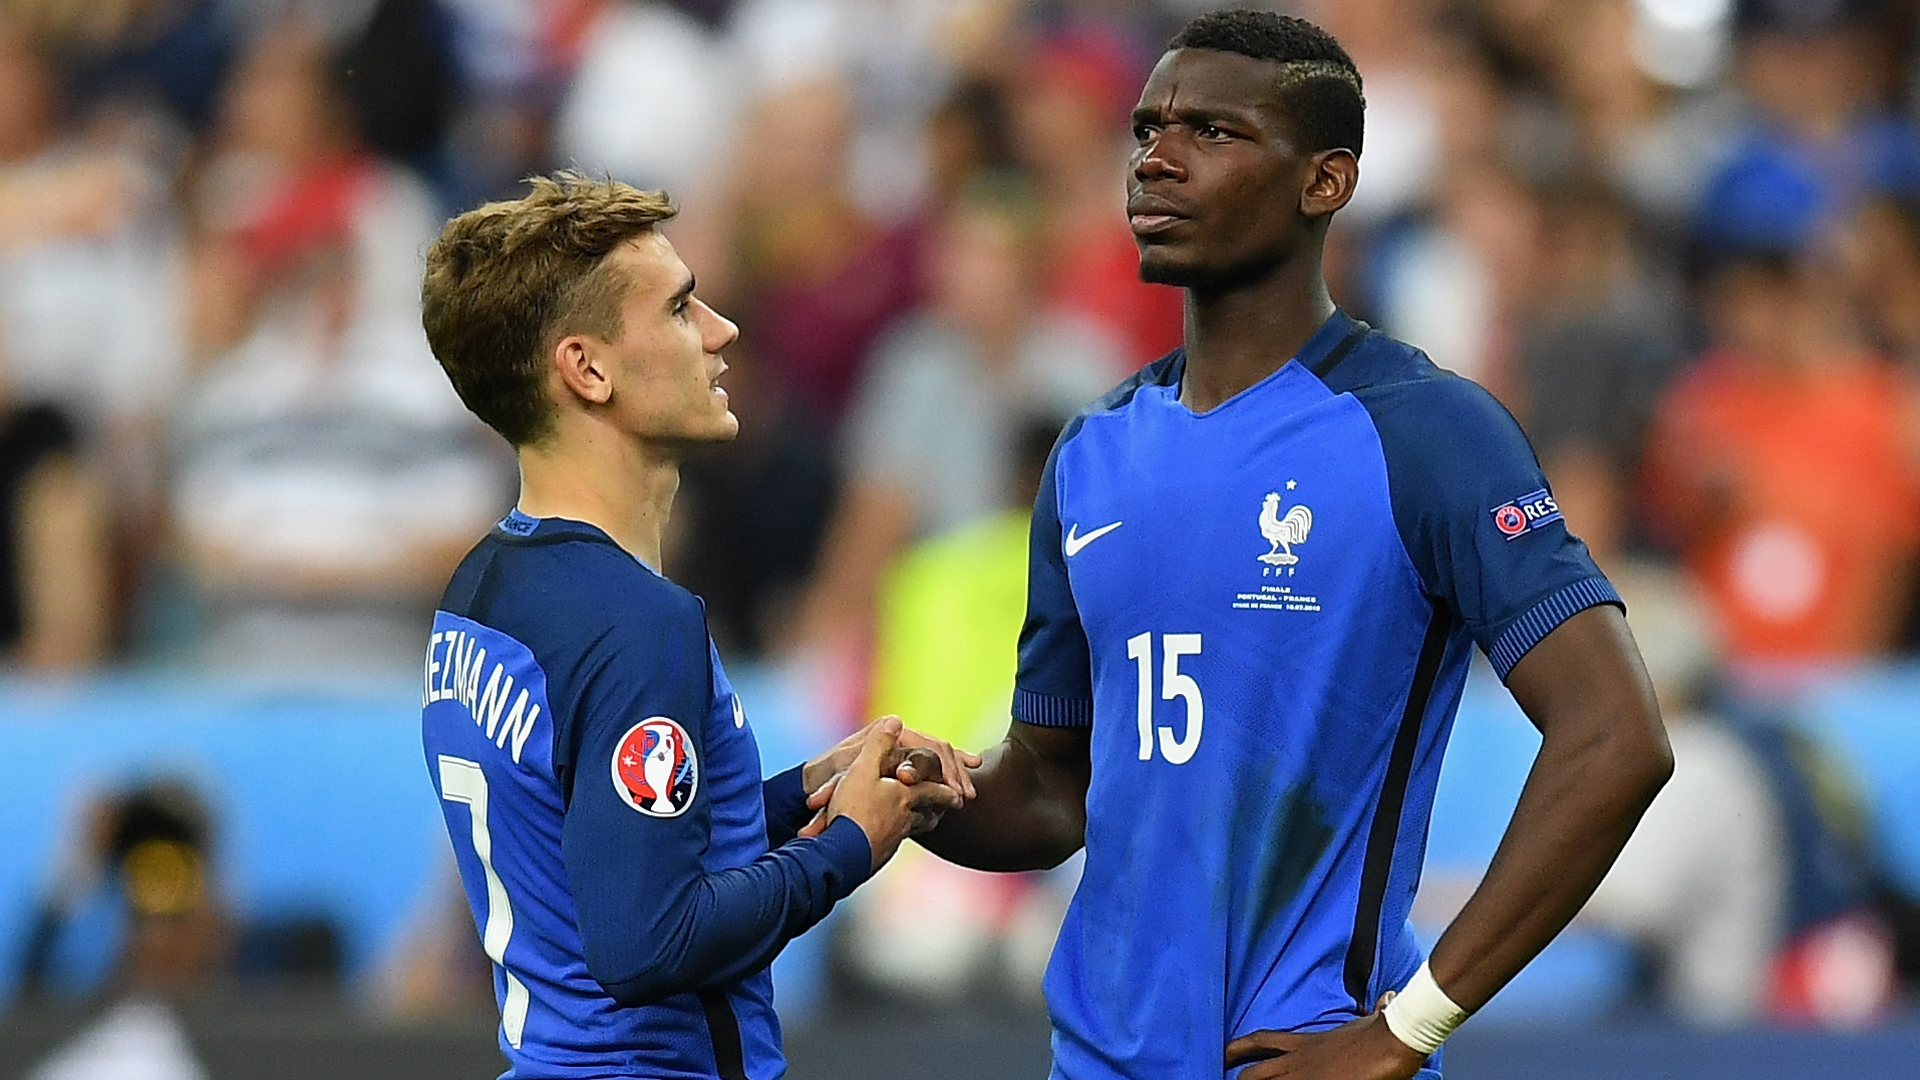 Deschamps: Pogba and Griezmann must be sure they want to move